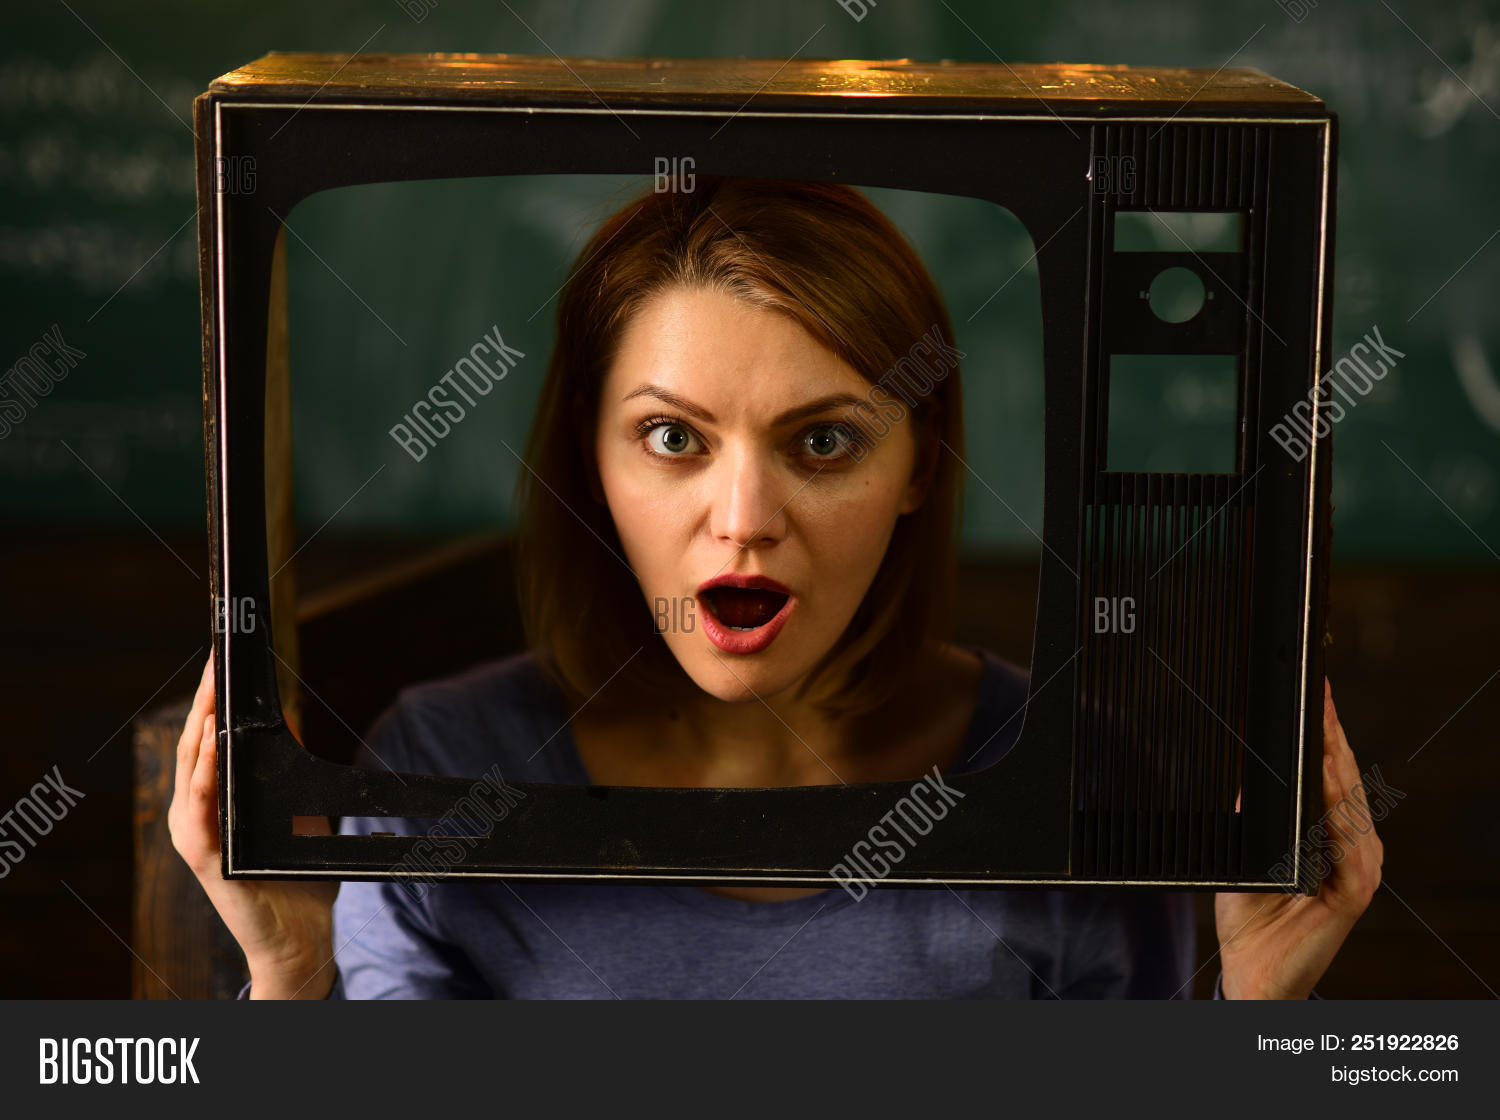 adult,bad,business,communication,expression,face,female,frustrated,girl,gossip,looking,media,mistake,mobile,news,office,online,report,shock,shocked,shocking,surprise,surprised,time,woman,worried